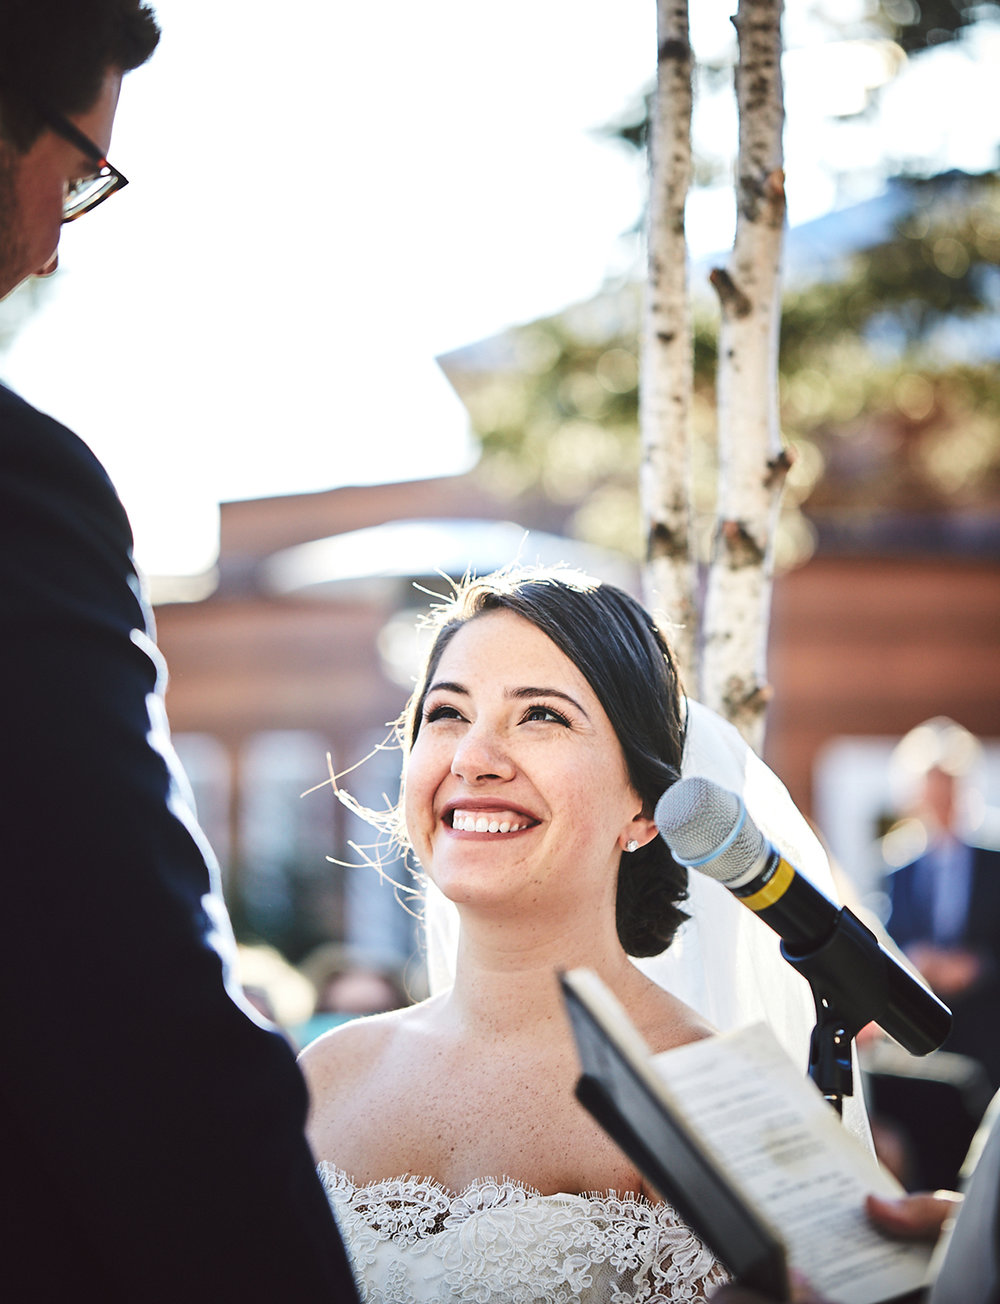 180324_StonehouseatStirlingRidgeWeddingPhotography_NJWeddingPhotographer_By_BriJohnsonWeddings_0101.jpg